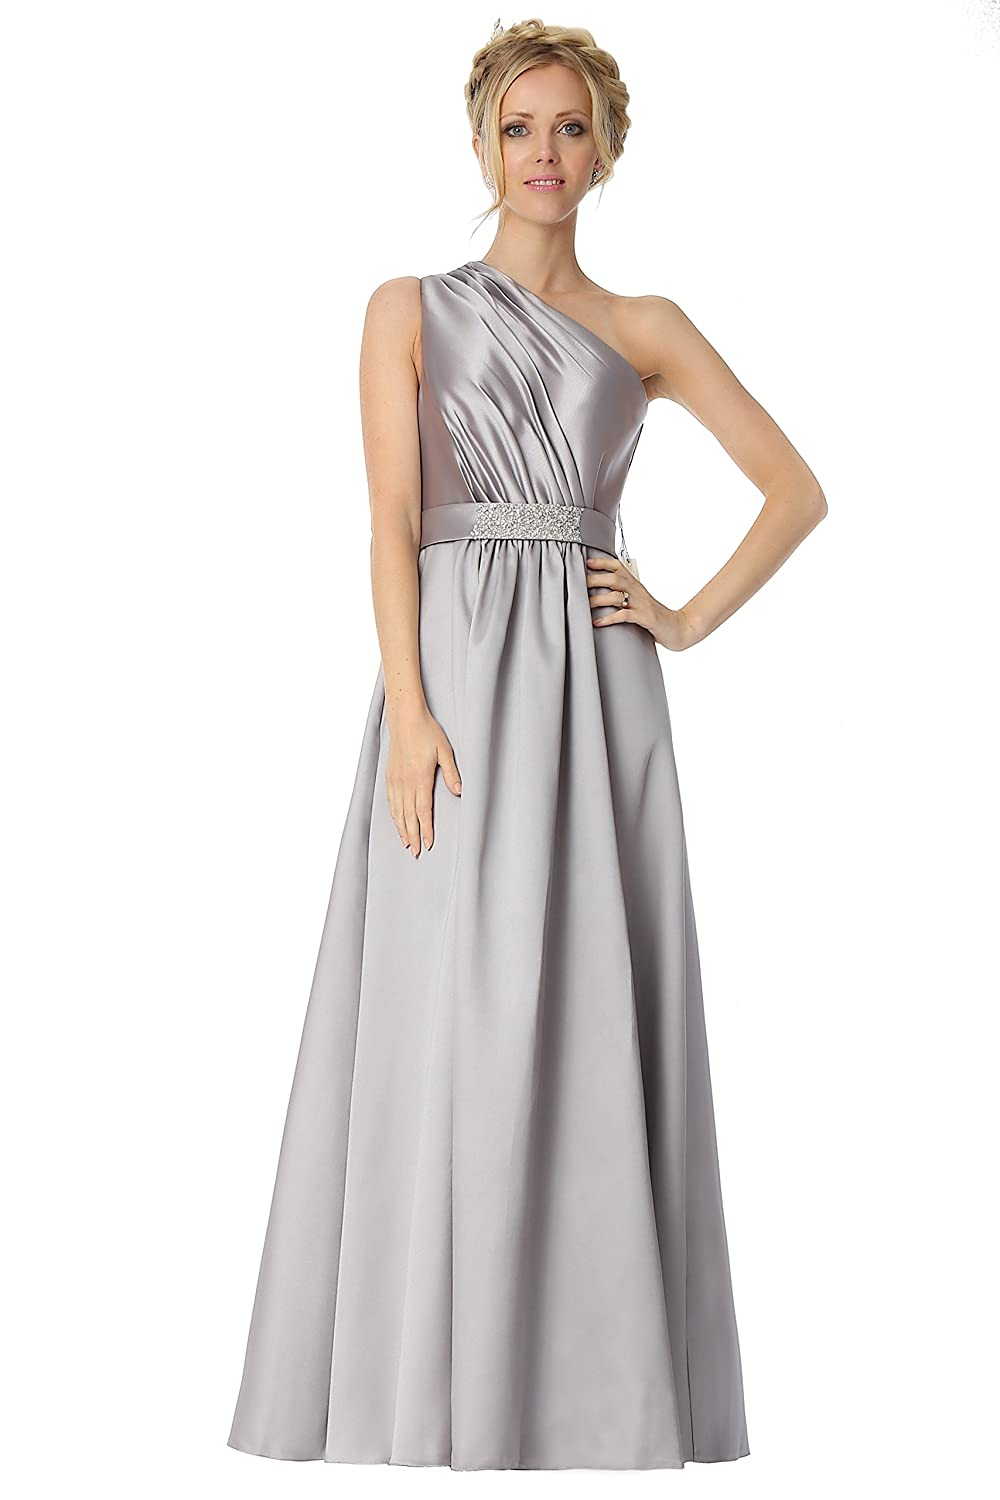 SEXYHER One Shoulder With Beading Details Bridesmaids Formal Evening Dress -EDJ1773